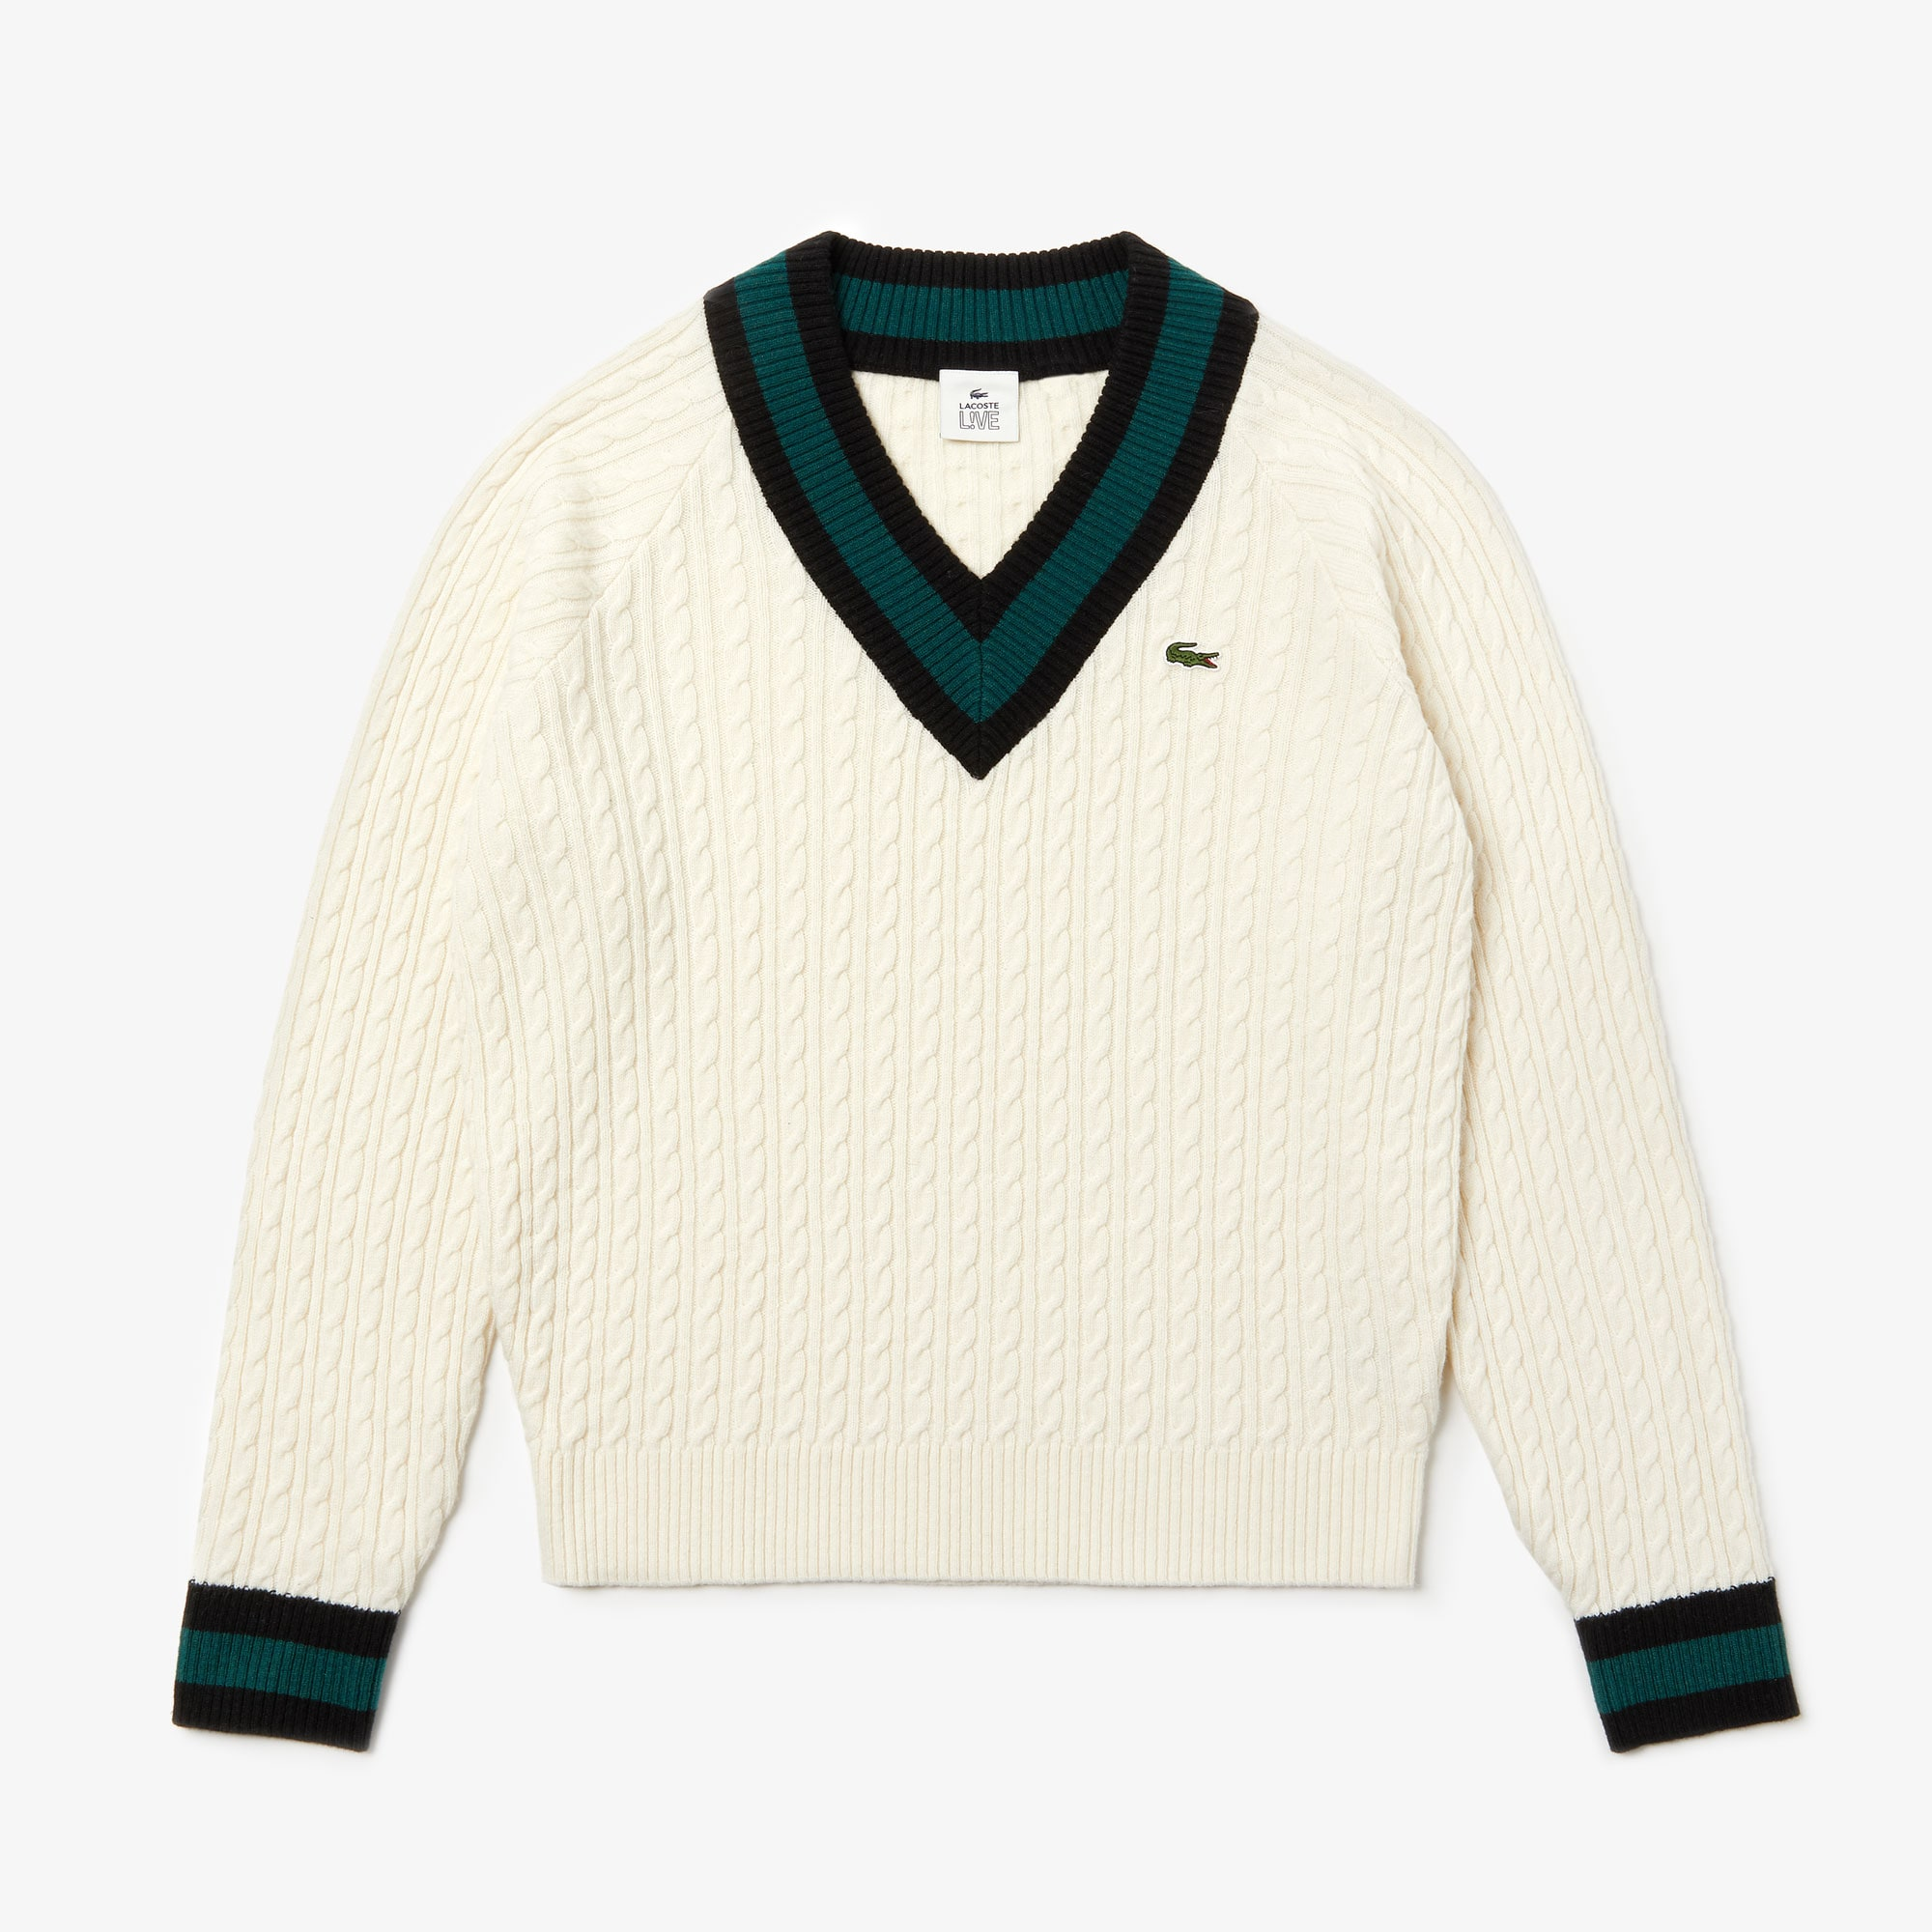 special for shoe good service 50% off Unisex Lacoste LIVE V-neck Cable Knit Wool Blend Sweater